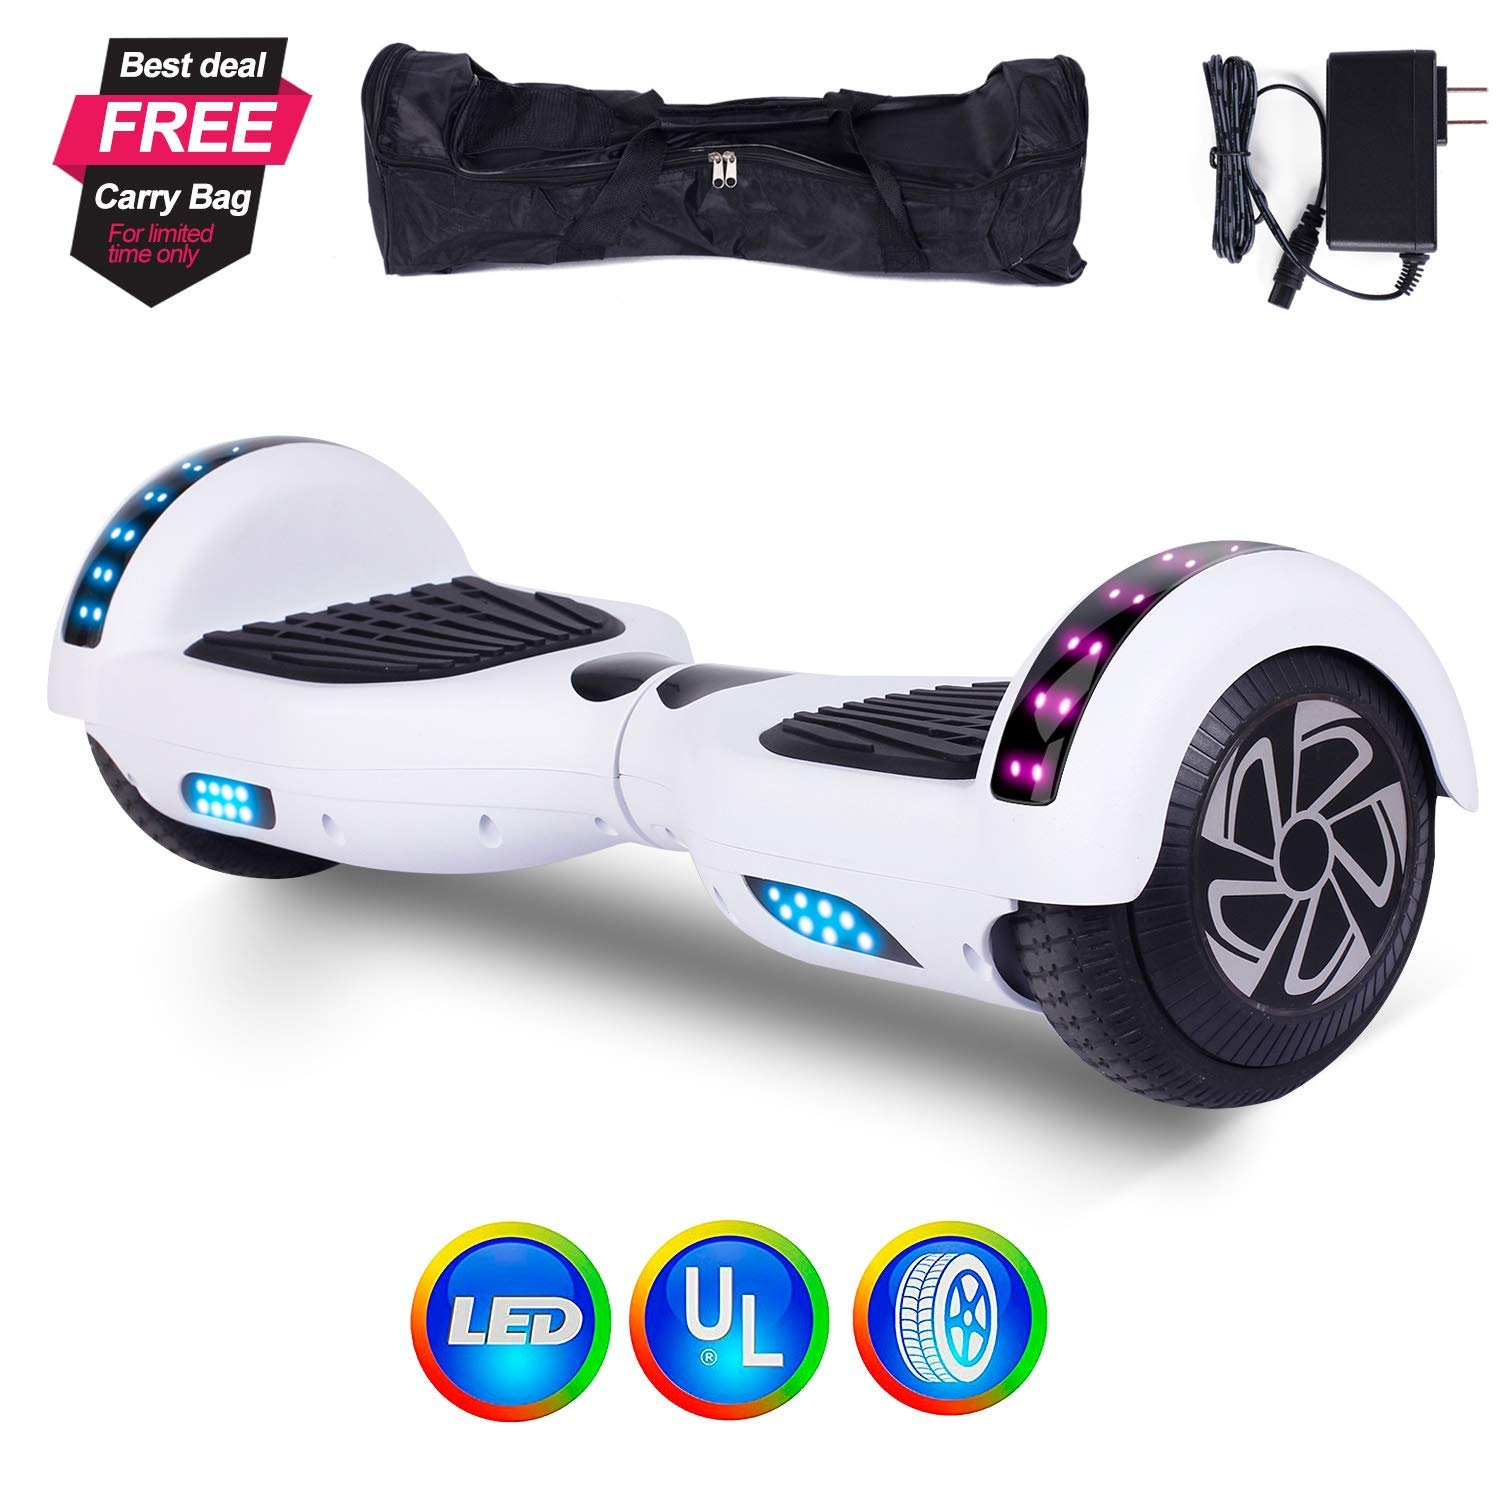 6 5 Hoverboard Self Balancing Scooter 2 Wheels Electric Dual Motor Led